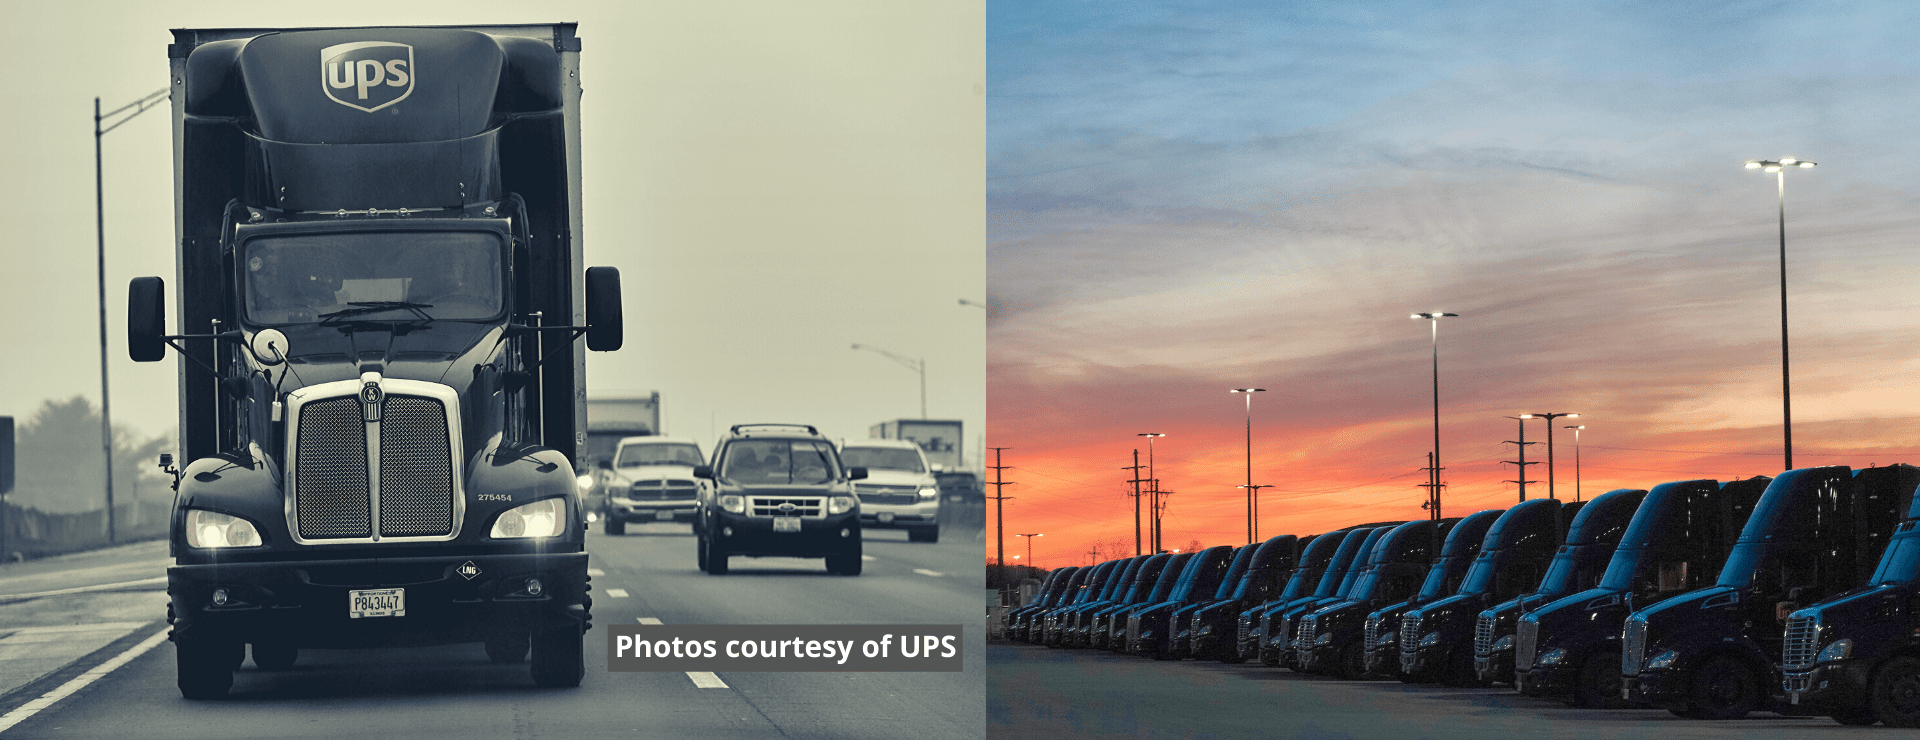 UPS 'Feeder Drivers' Make Holidays Possible But Clogged American Infrastructure Creates Ongoing Problems